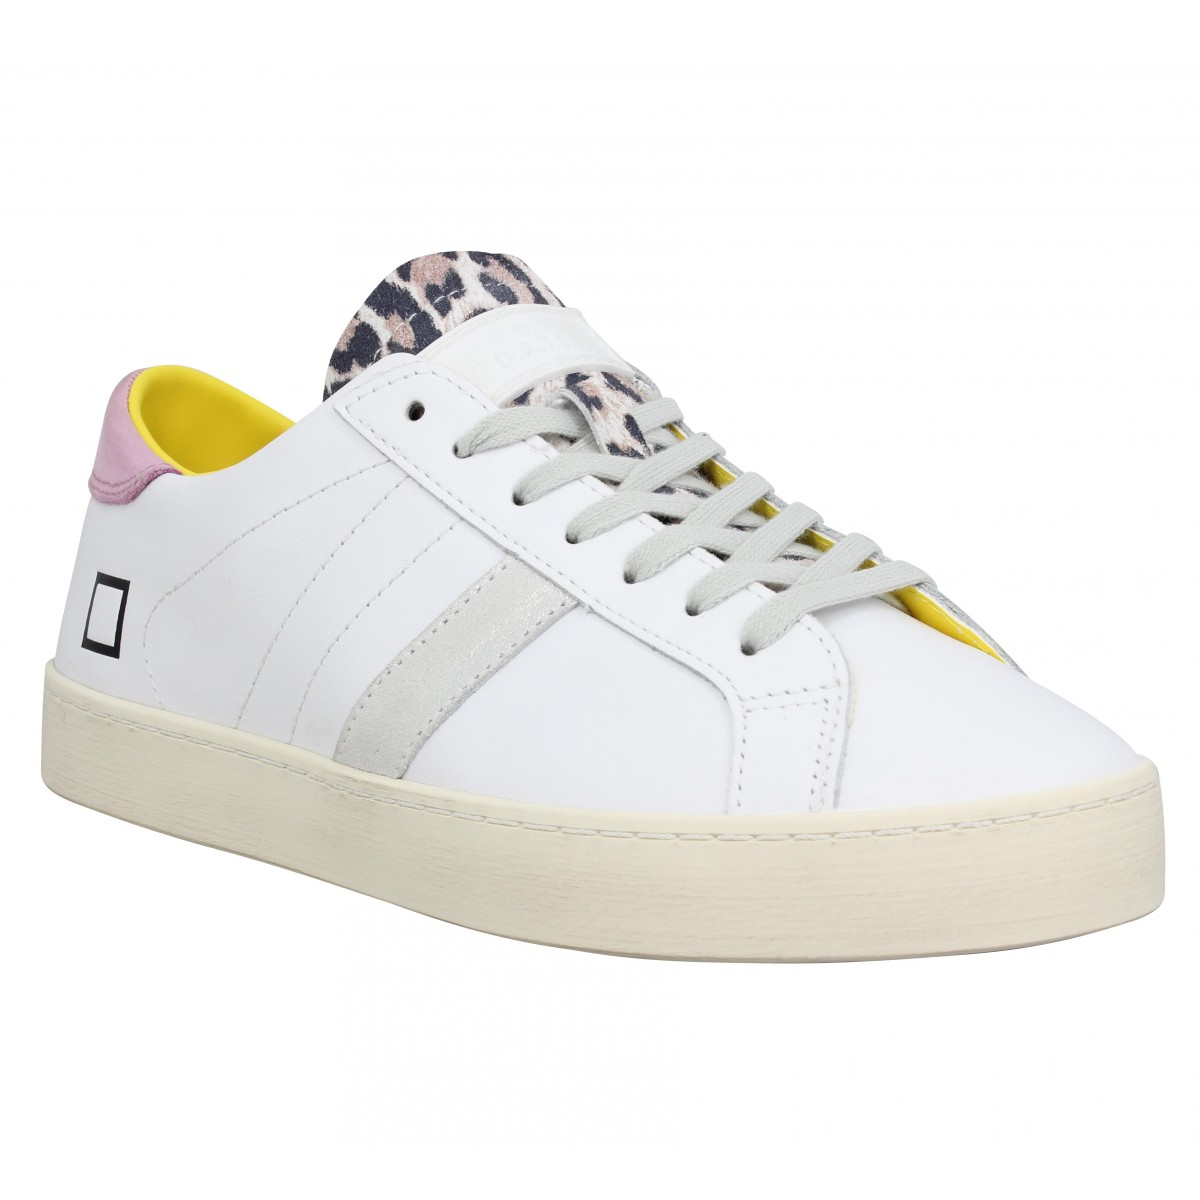 D.A.T.E Femme Date Sneakers Hill Low...